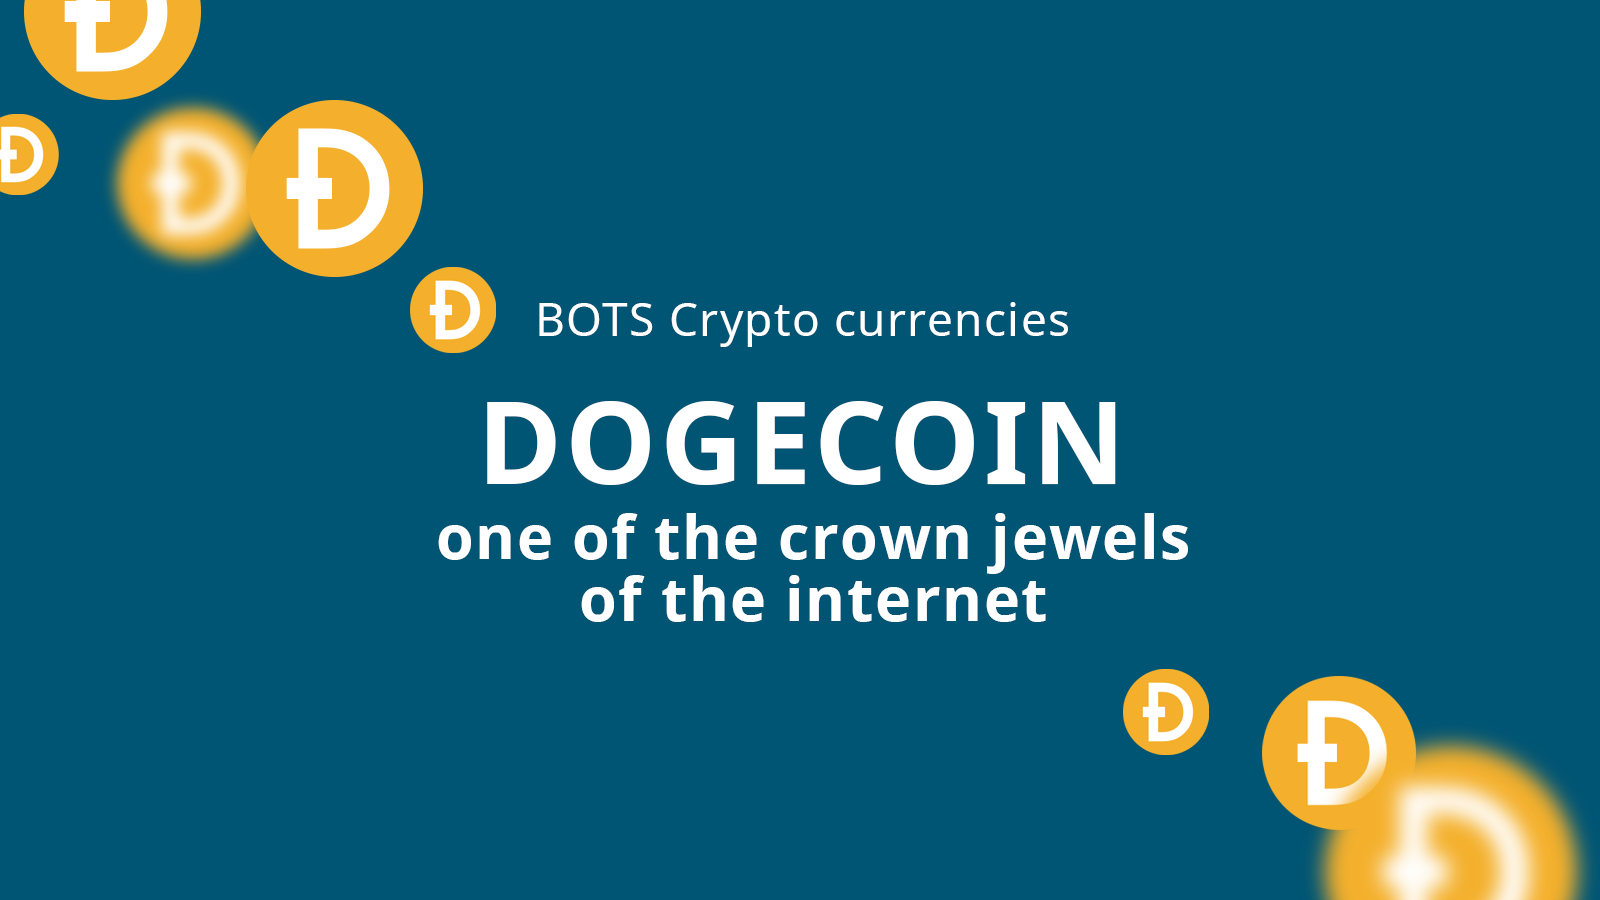 Dogecoin: one of the crown jewels of the internet